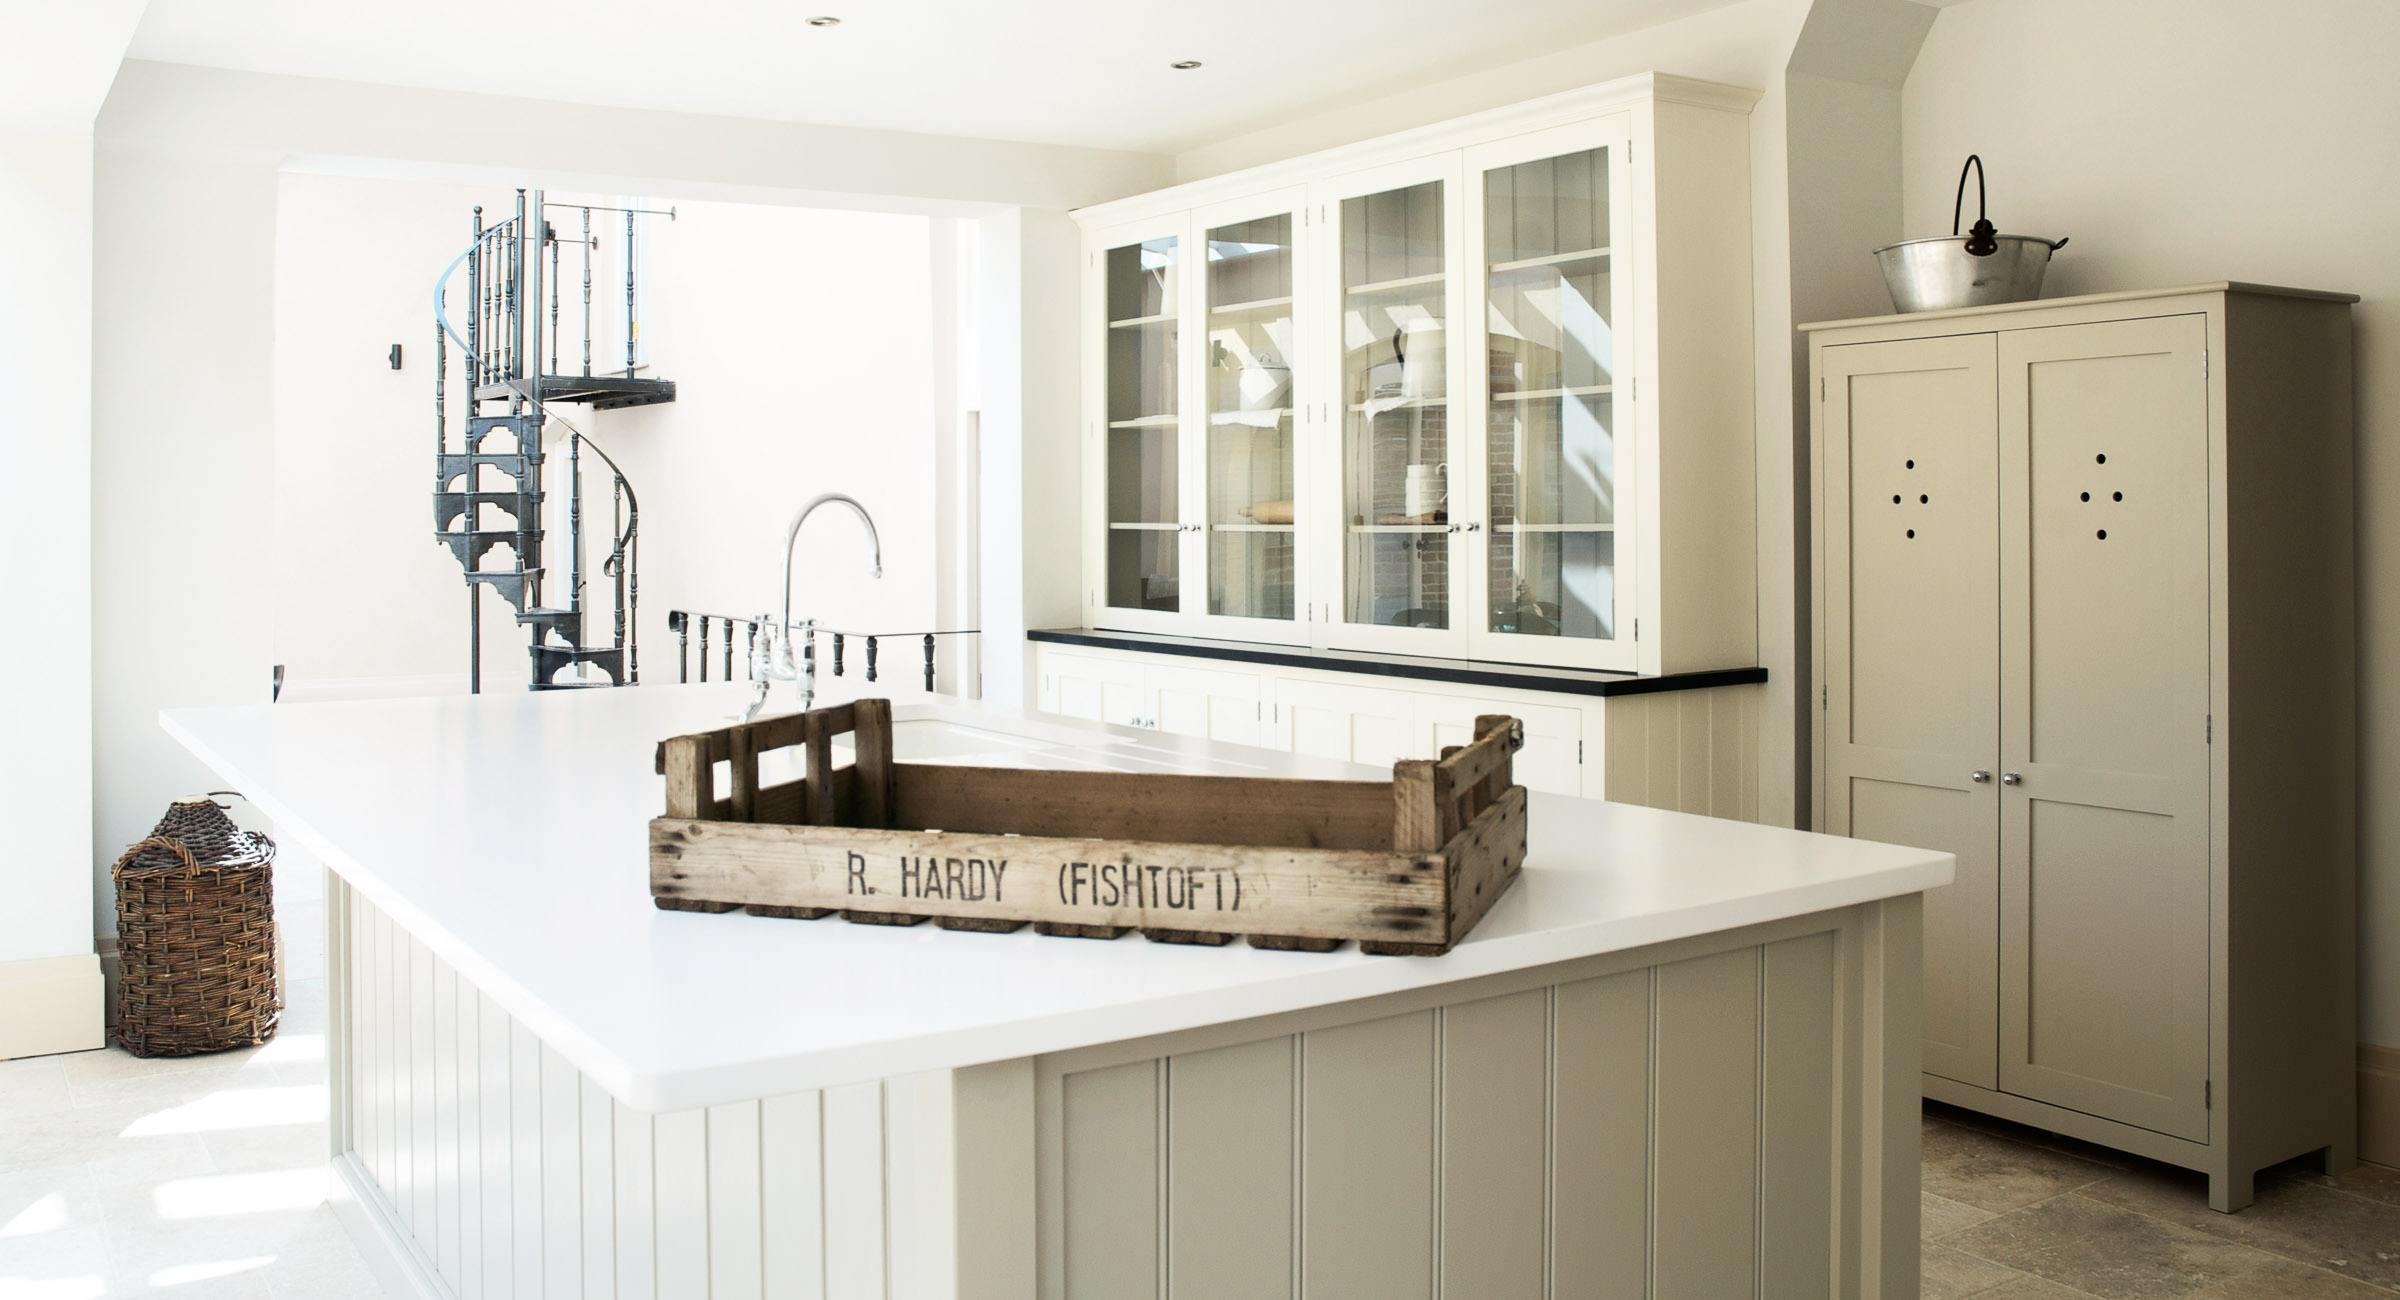 shaker kitchen shaker kitchen island The Shaker kitchen in this Leicestershire barn has a distinctive French influence It features black